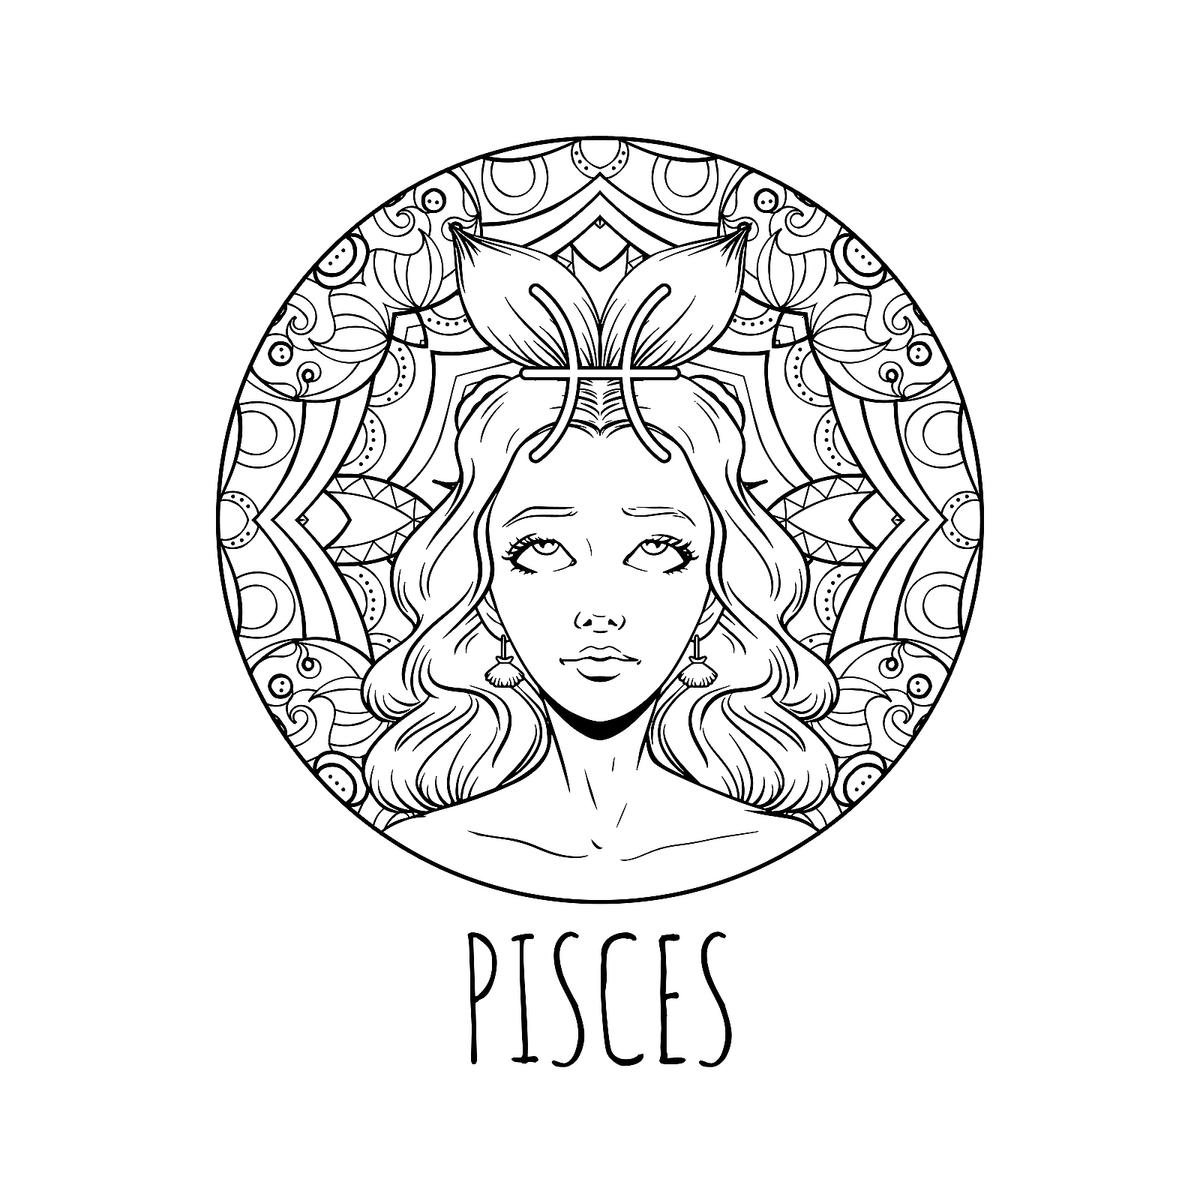 zodiac coloring pages zodiac signs coloring pages kidsuki pages zodiac coloring